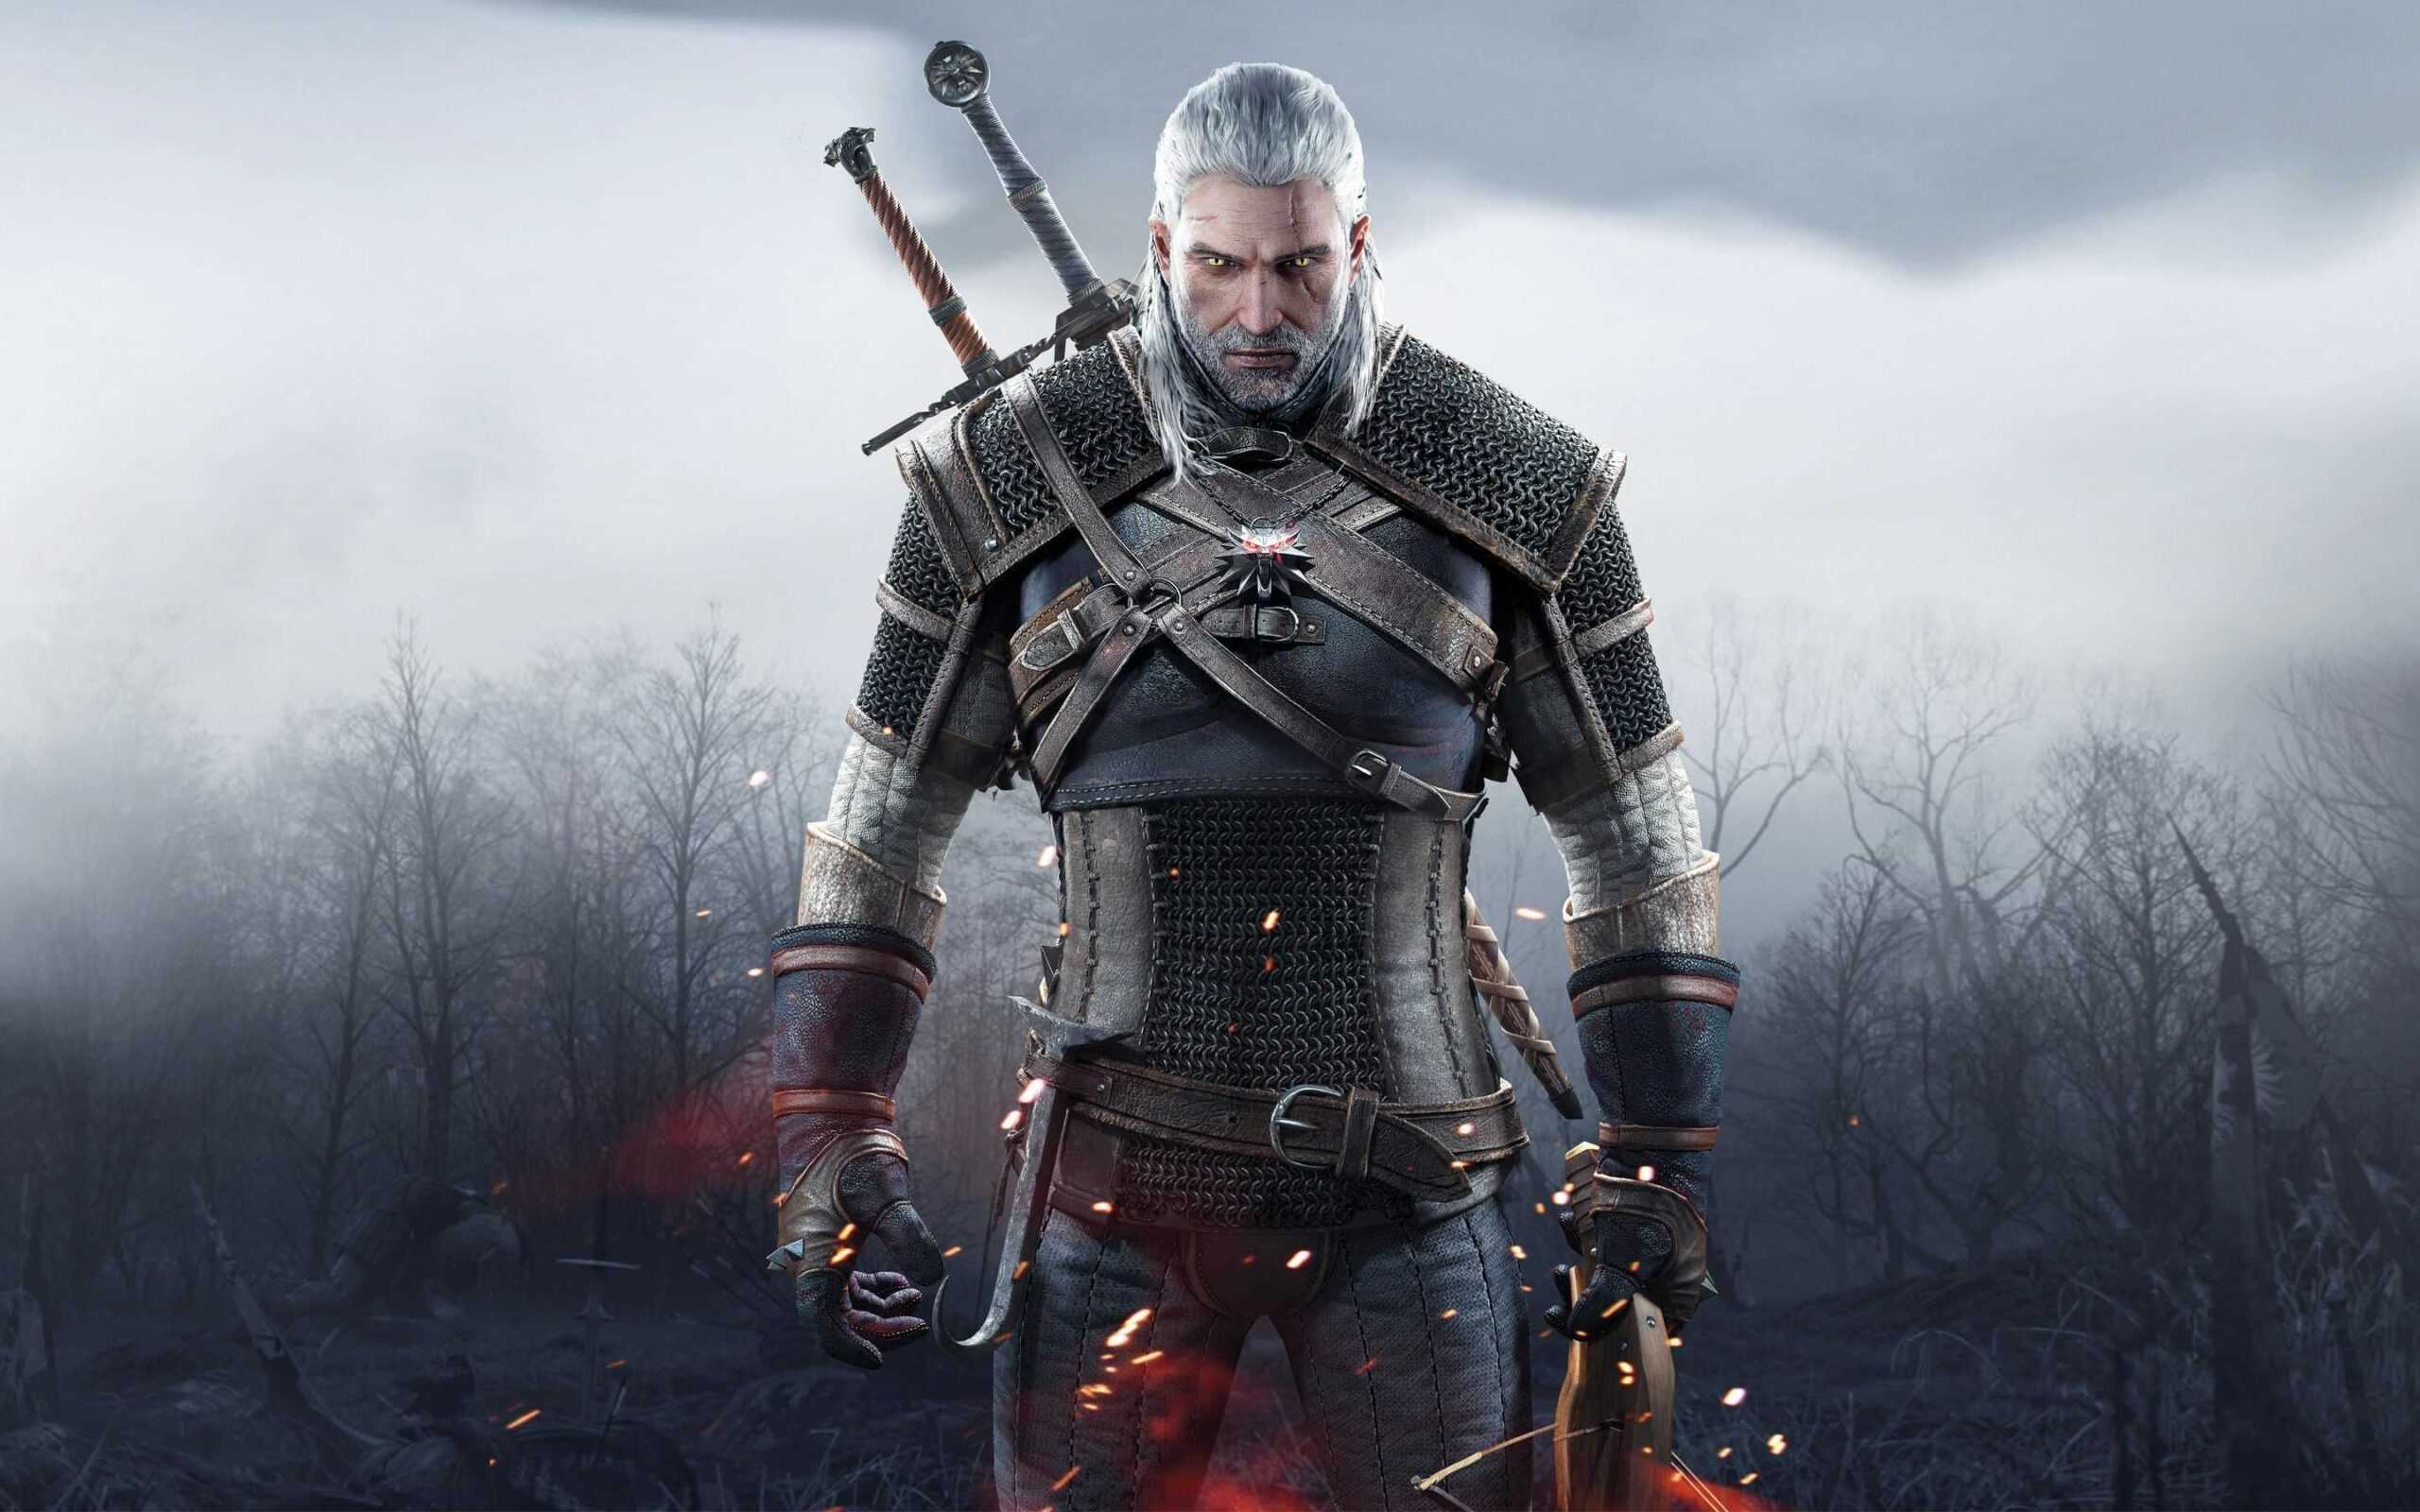 The Witcher 3: Wild Hunt, Geralt